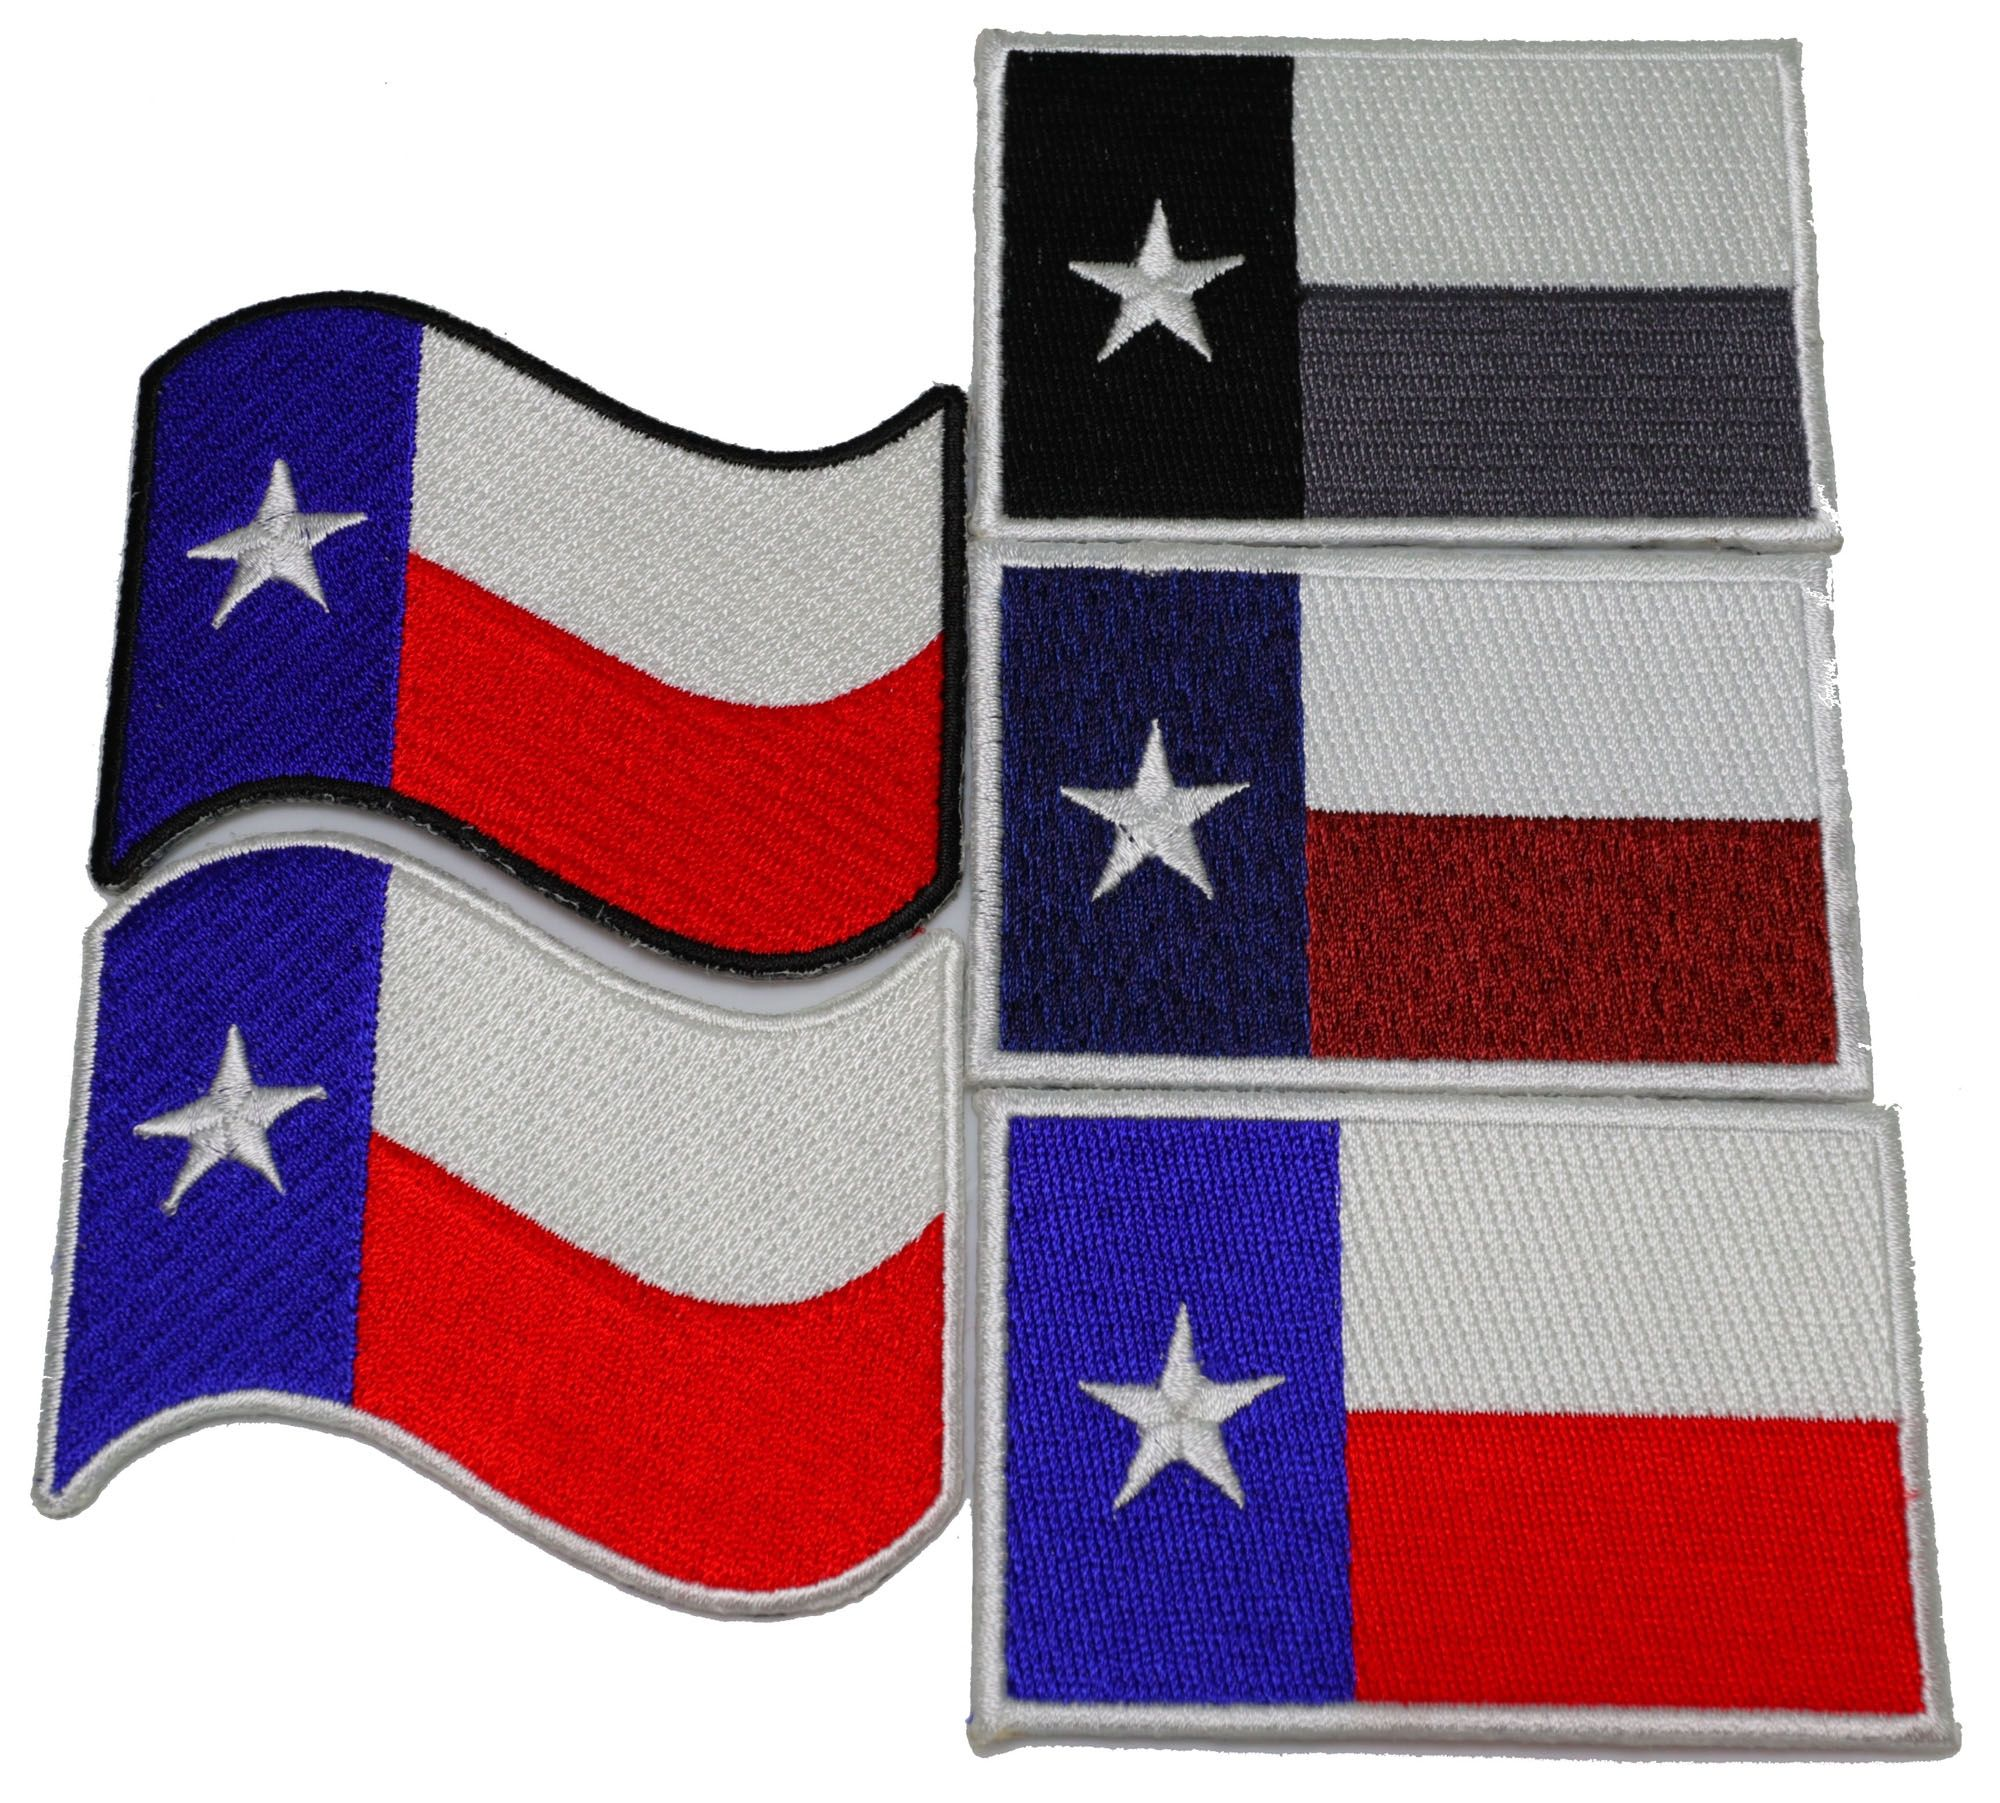 Set Of 5 Texas Flag Patches Waving And Rectangular Flag Patches Texas Flags Flag